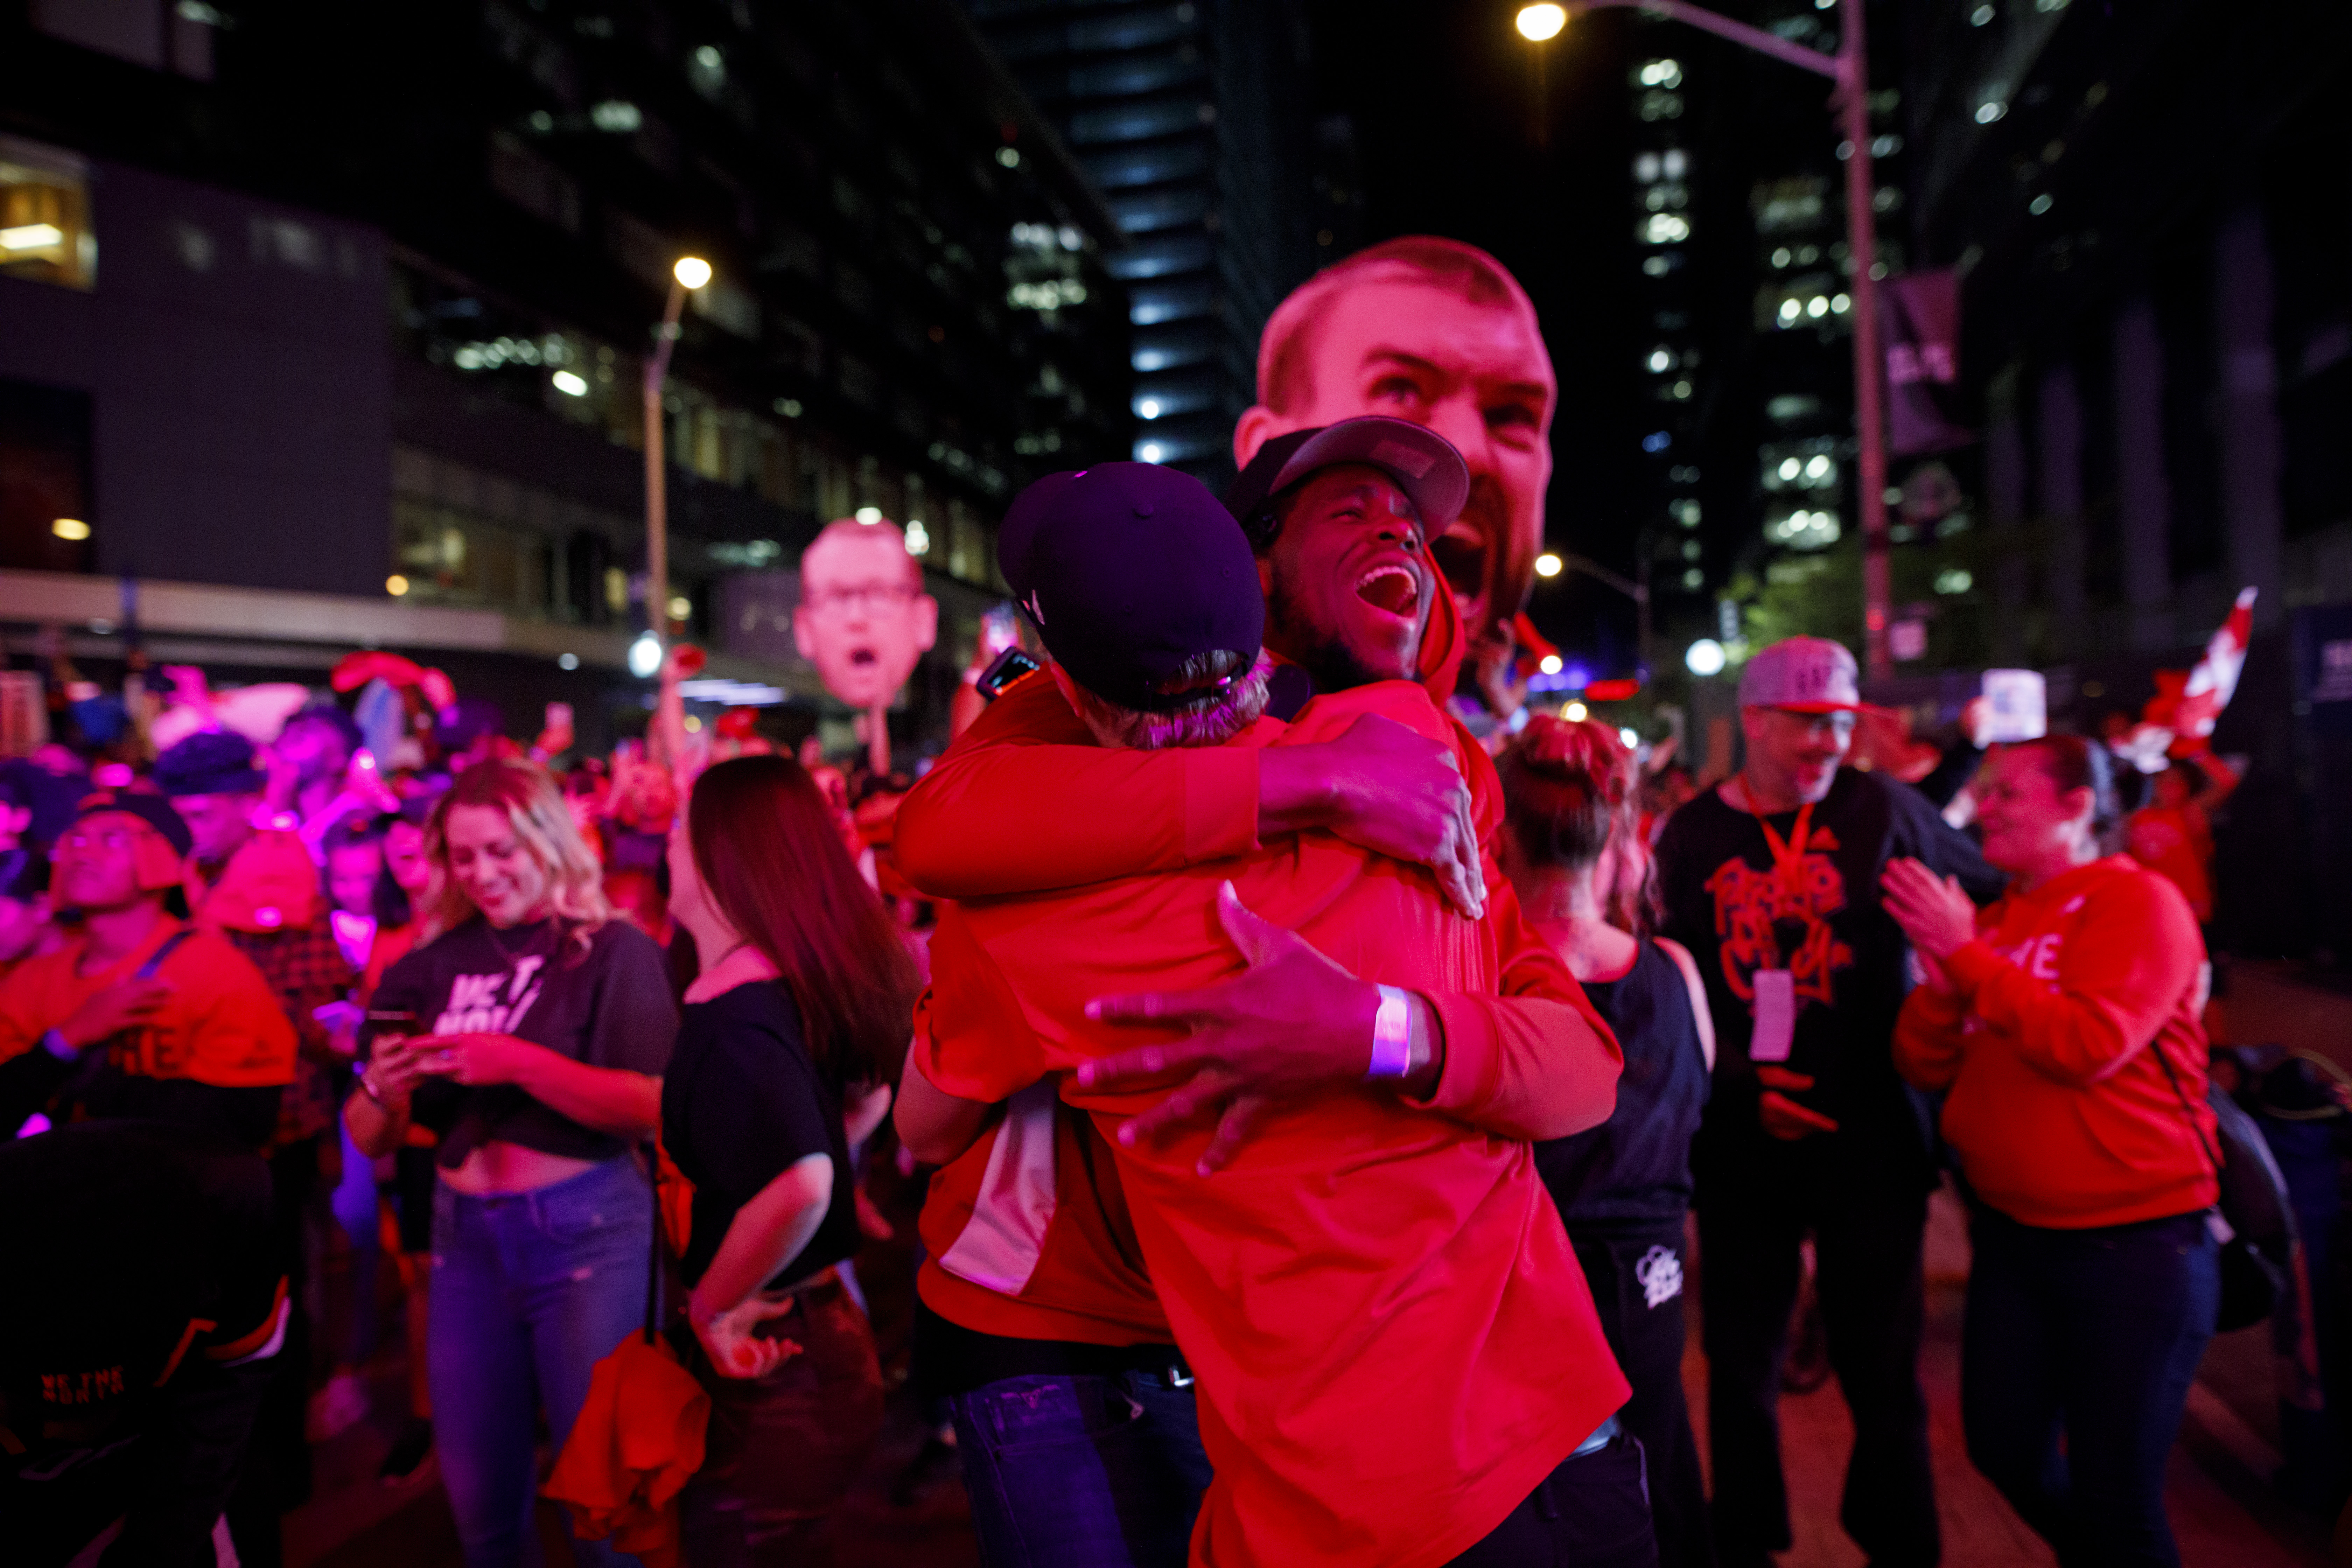 Raptors Fans Gather At 'Jurassic Park' In Toronto To Watch Their Team's First NBA Finals Series